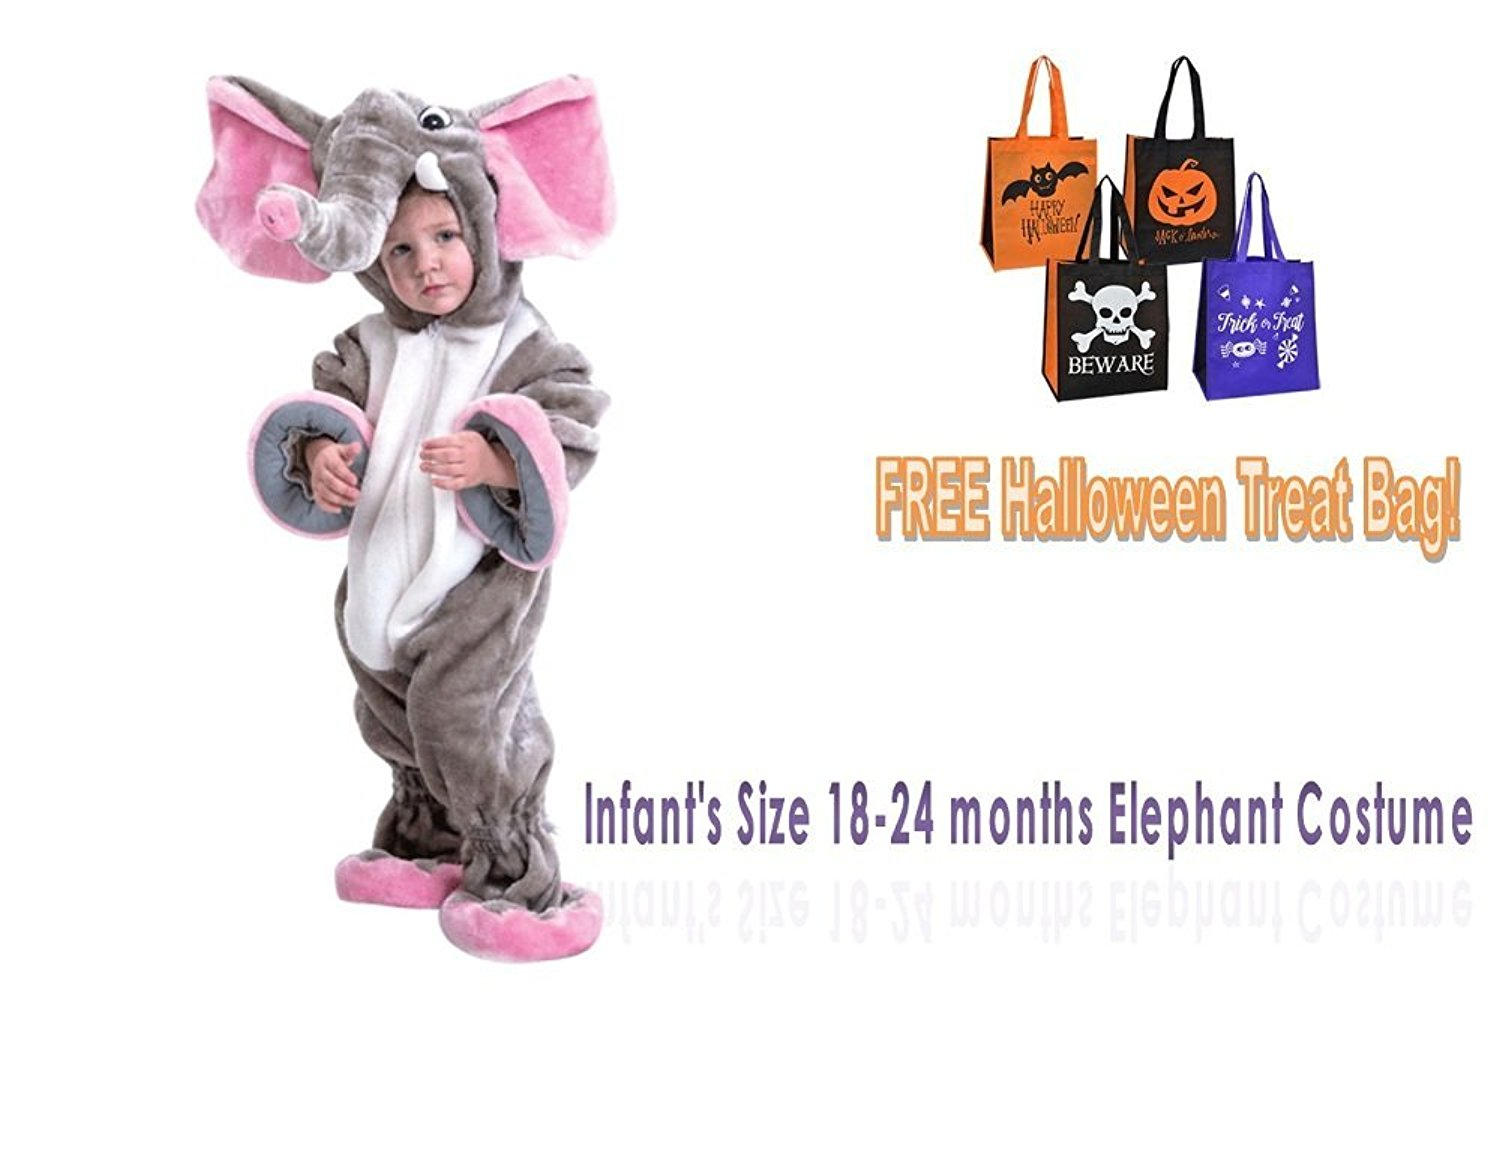 buy childs halloween costume elephant infants size 18-24 months